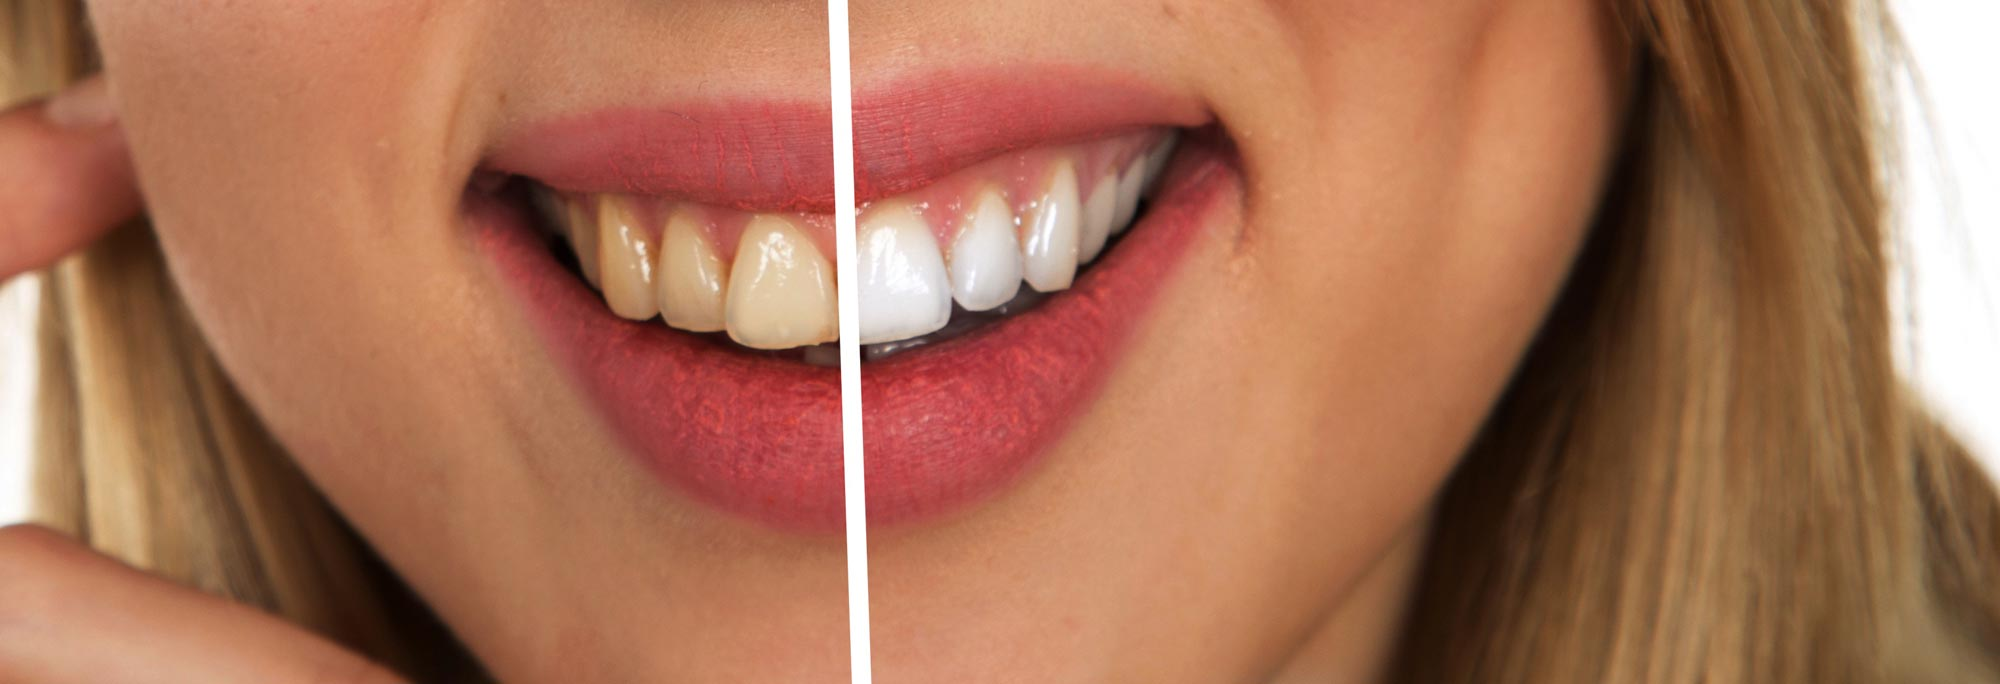 01-BrookvaleDental-BlogBanner-Preventing-Top-Tips-Prevent-Teeth-Staining